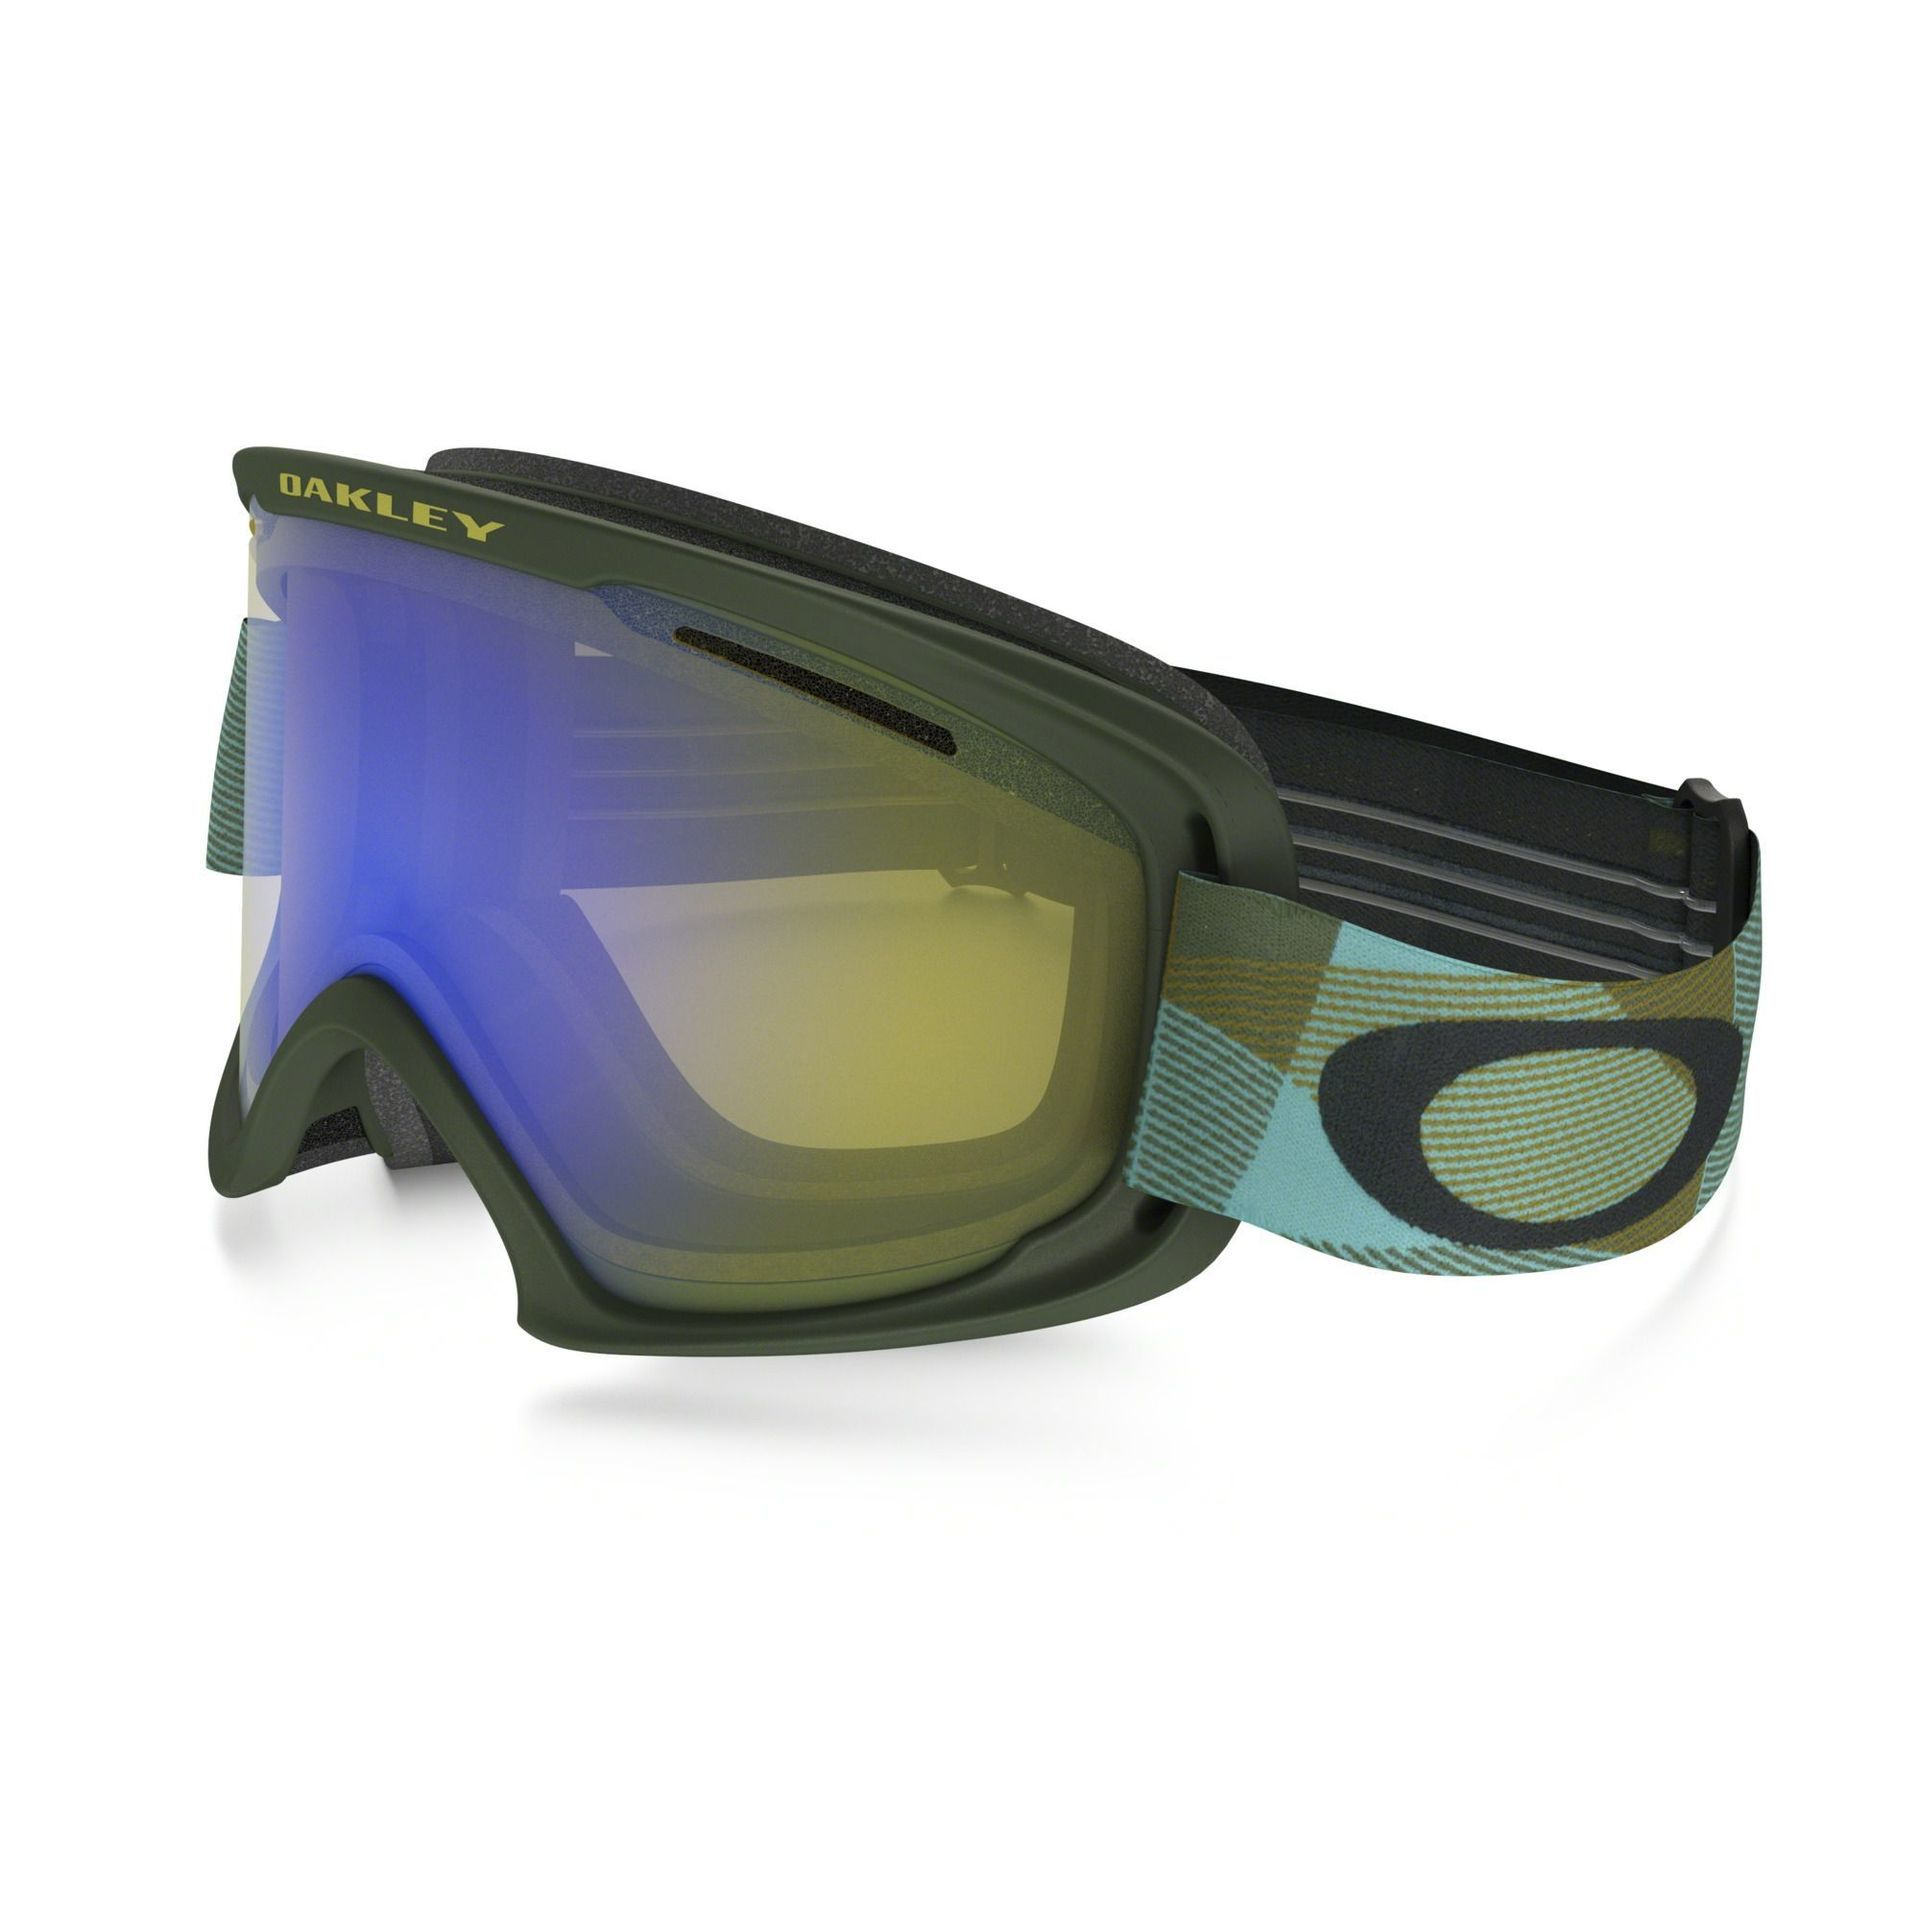 GOGLE OAKLEY O2 XL ABSTRACT LINES BURNISHED BLUE HI YELLOW IRIDIUM